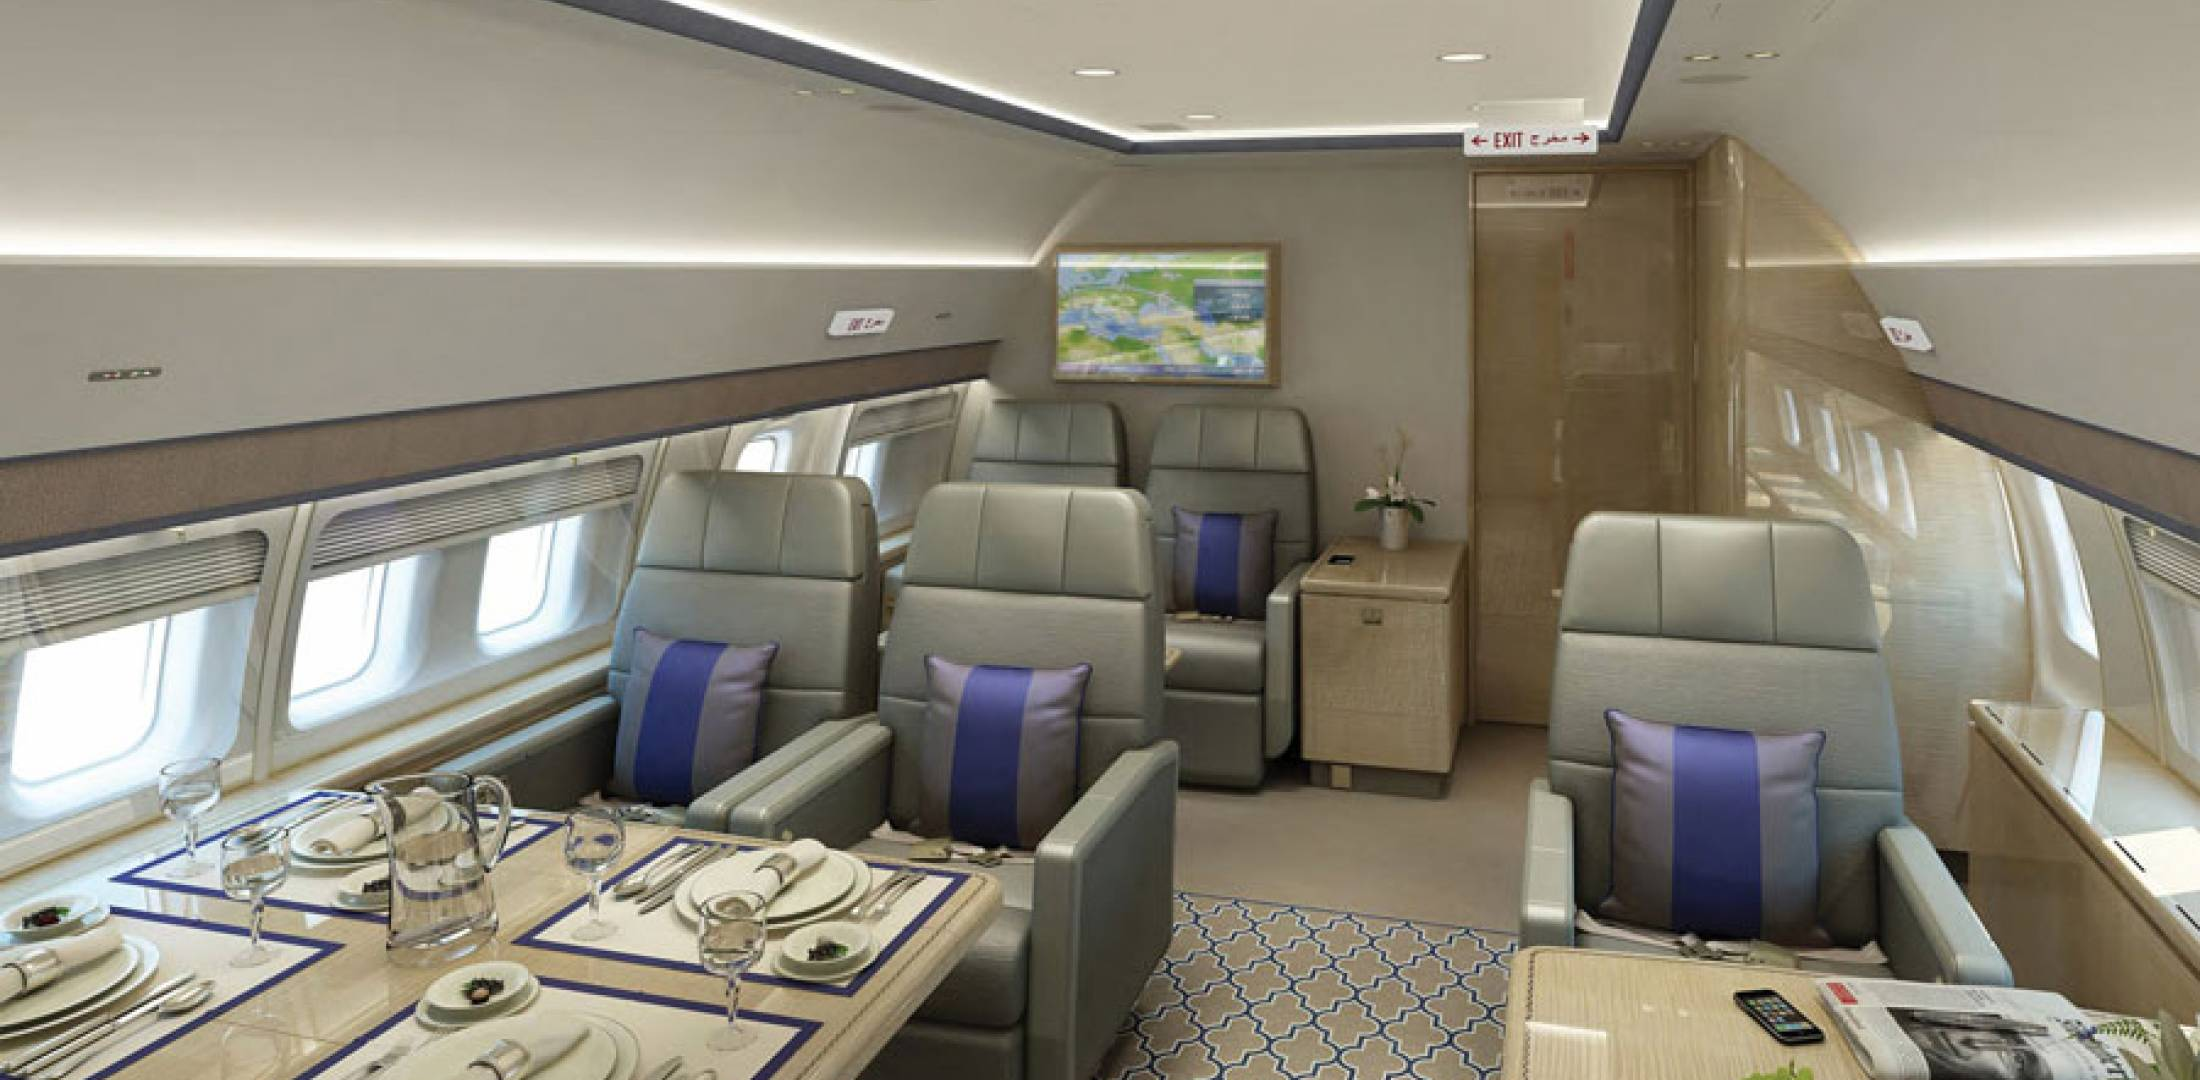 Private Jet With Bedroom Bbj Brings Bbj3 To Ebace Sees Sales Opportunities For Bbj